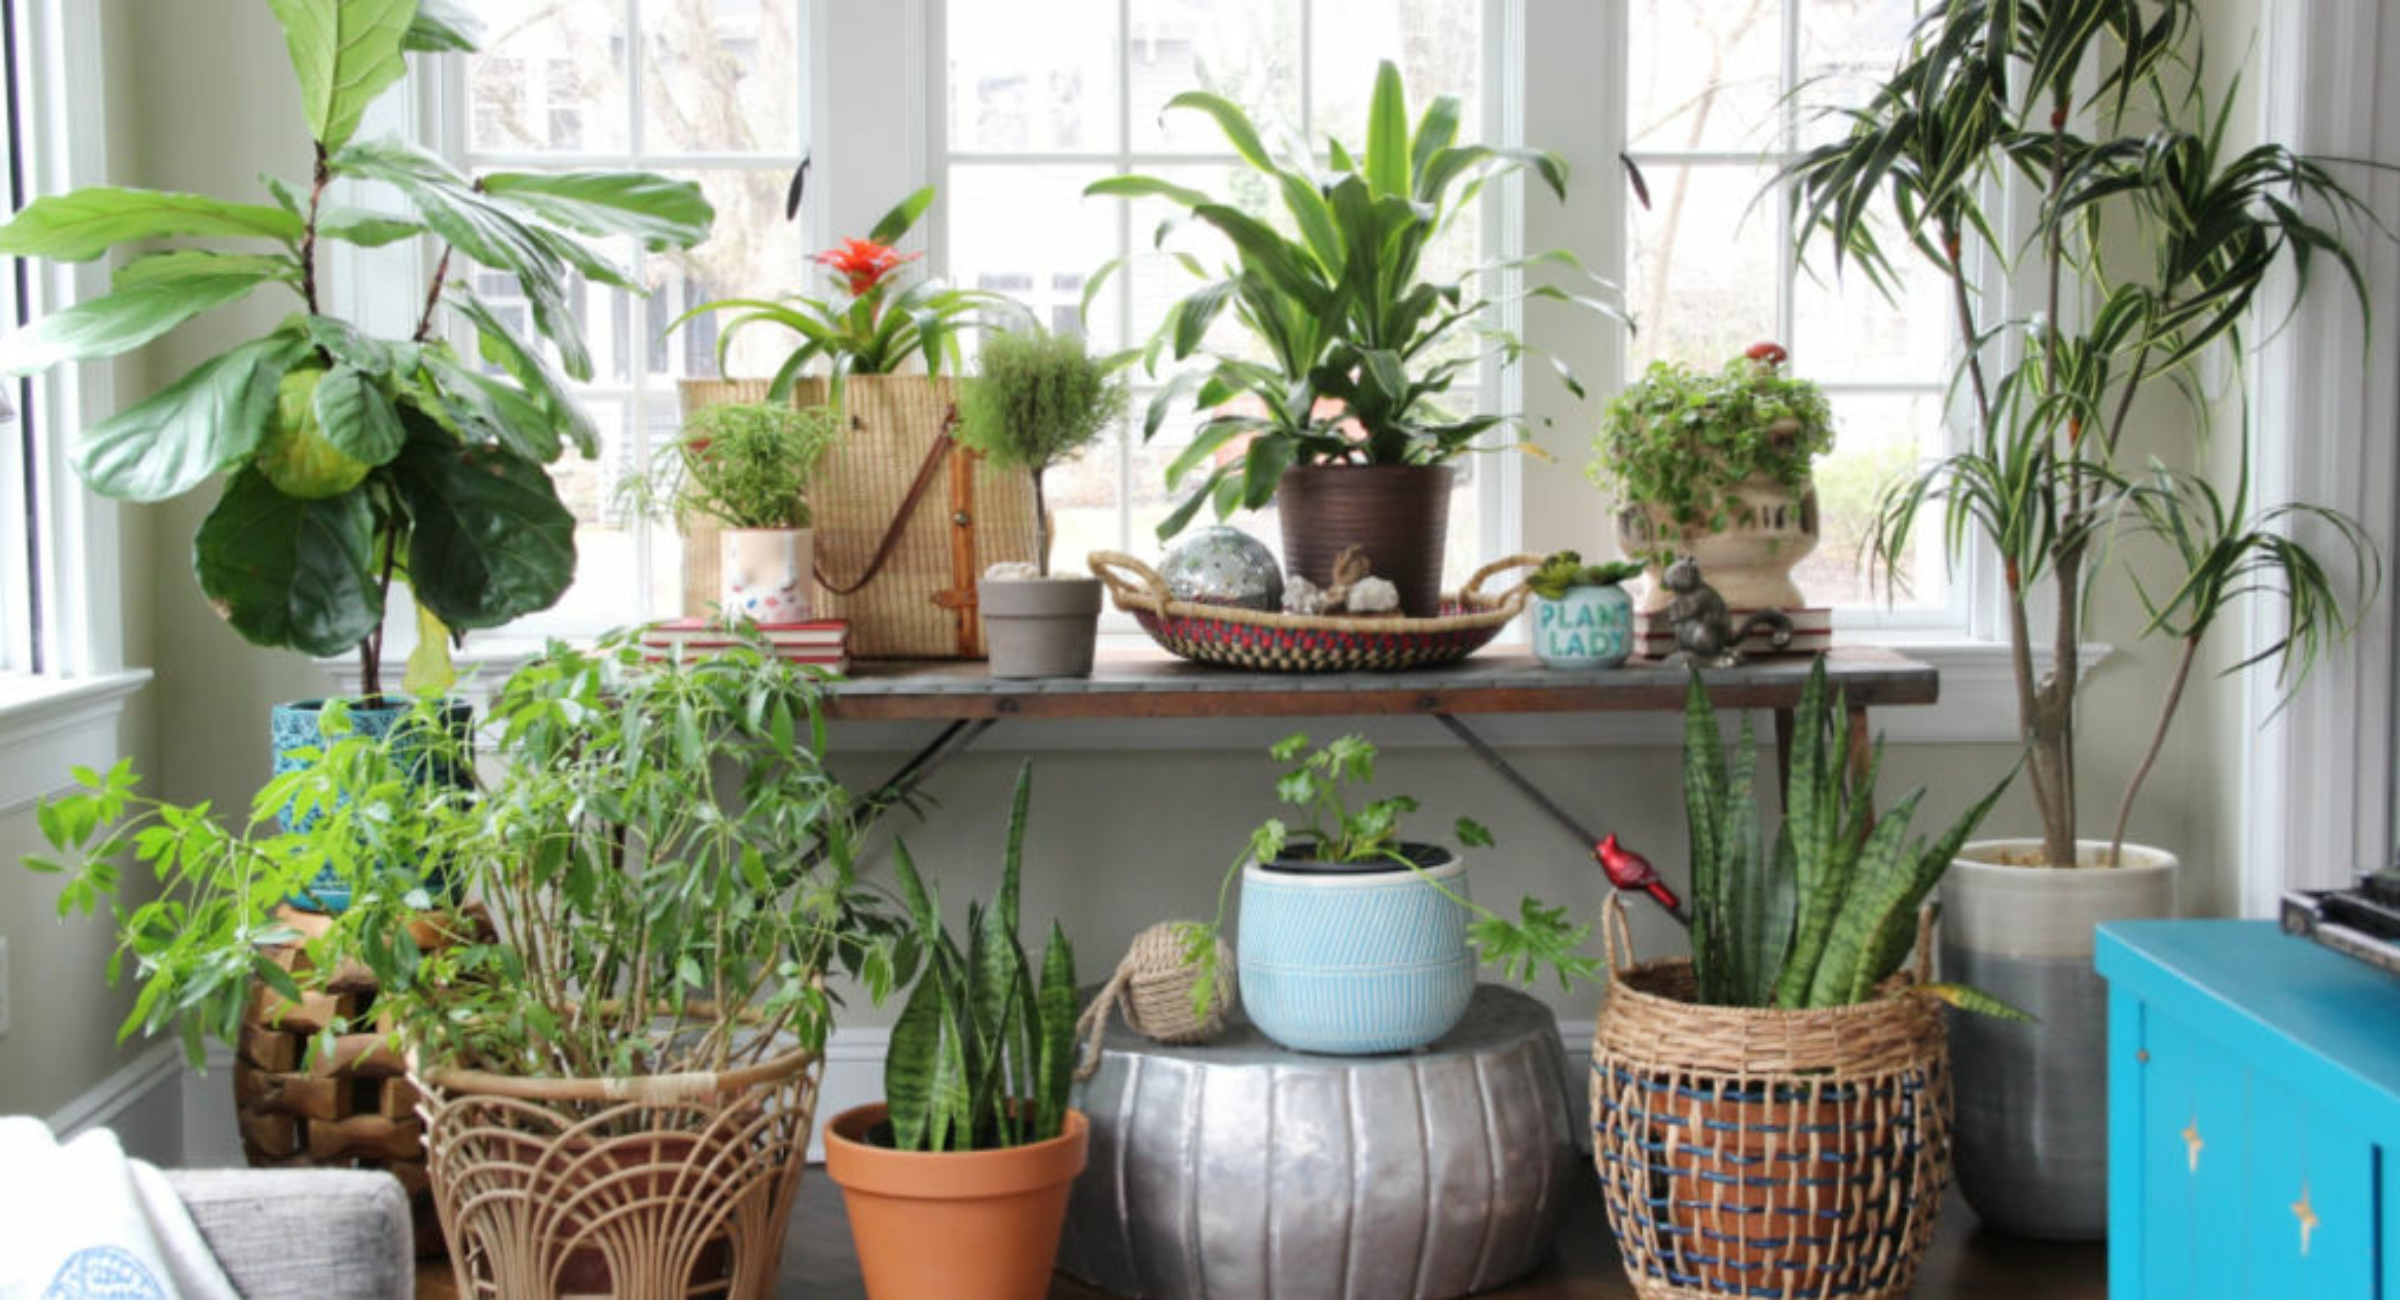 plant-display-sunroom-jungalow-boho-plant-lady